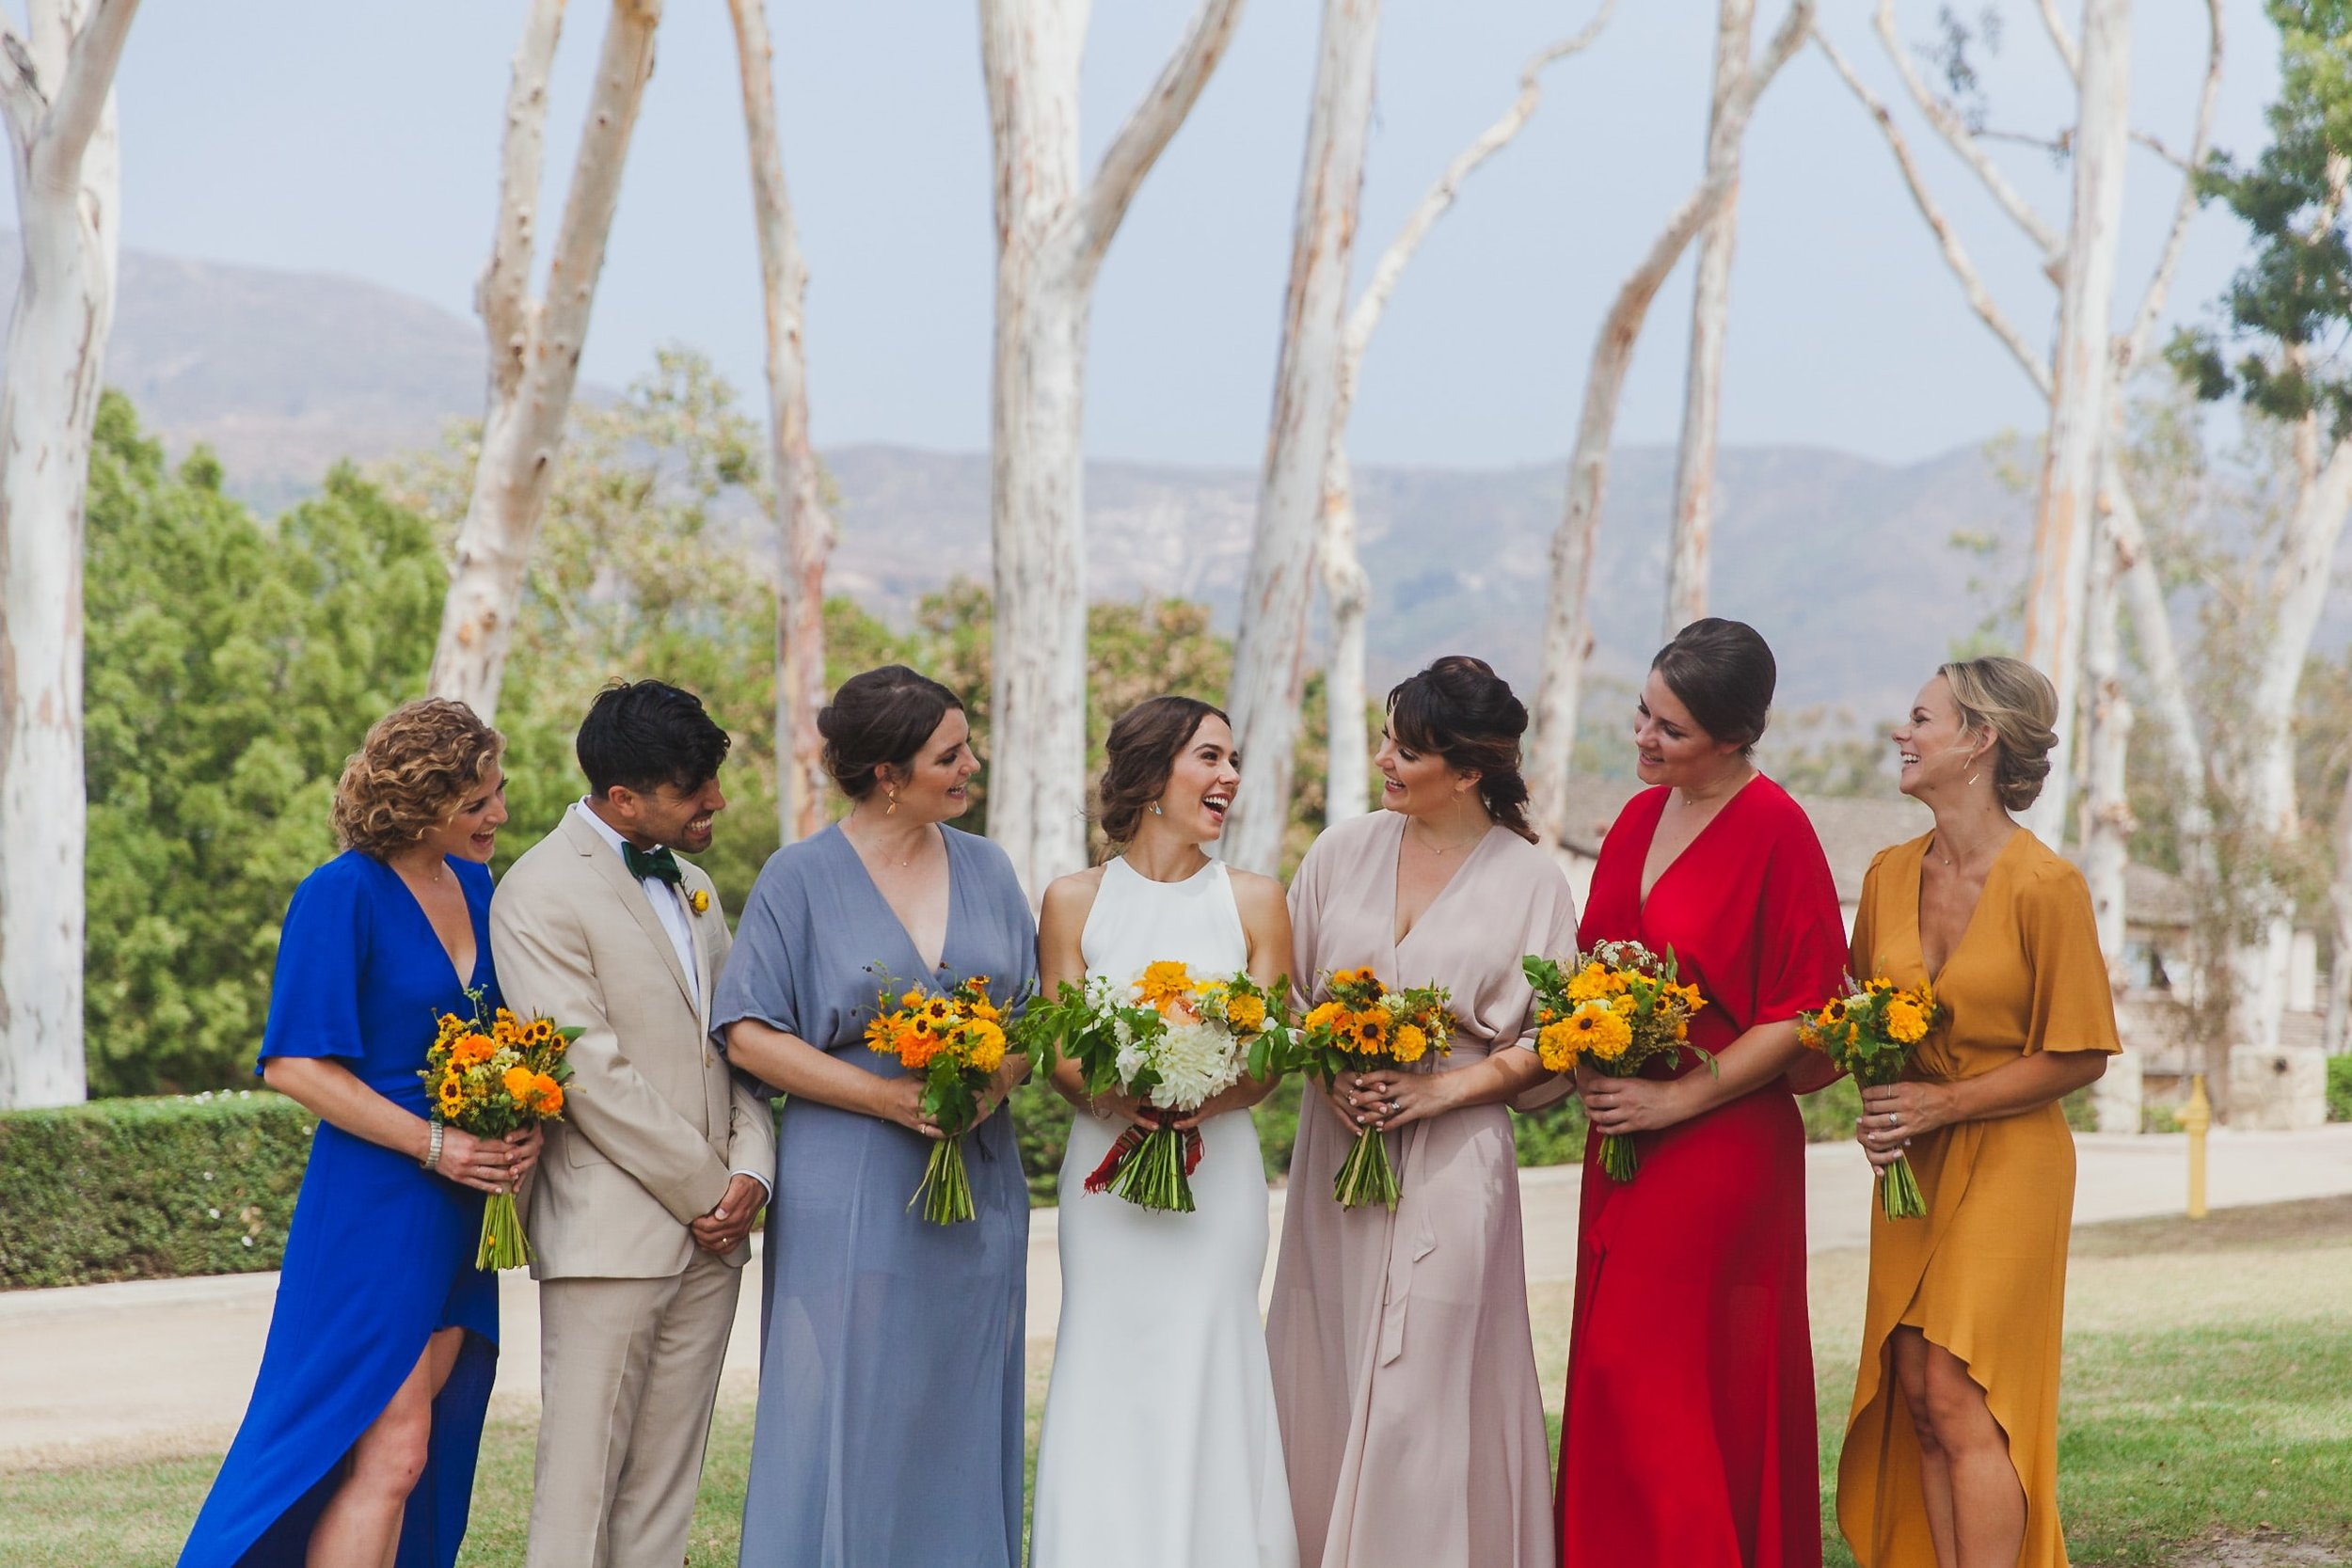 Bridesmaids in colorful dresses flanking the smiling bride.